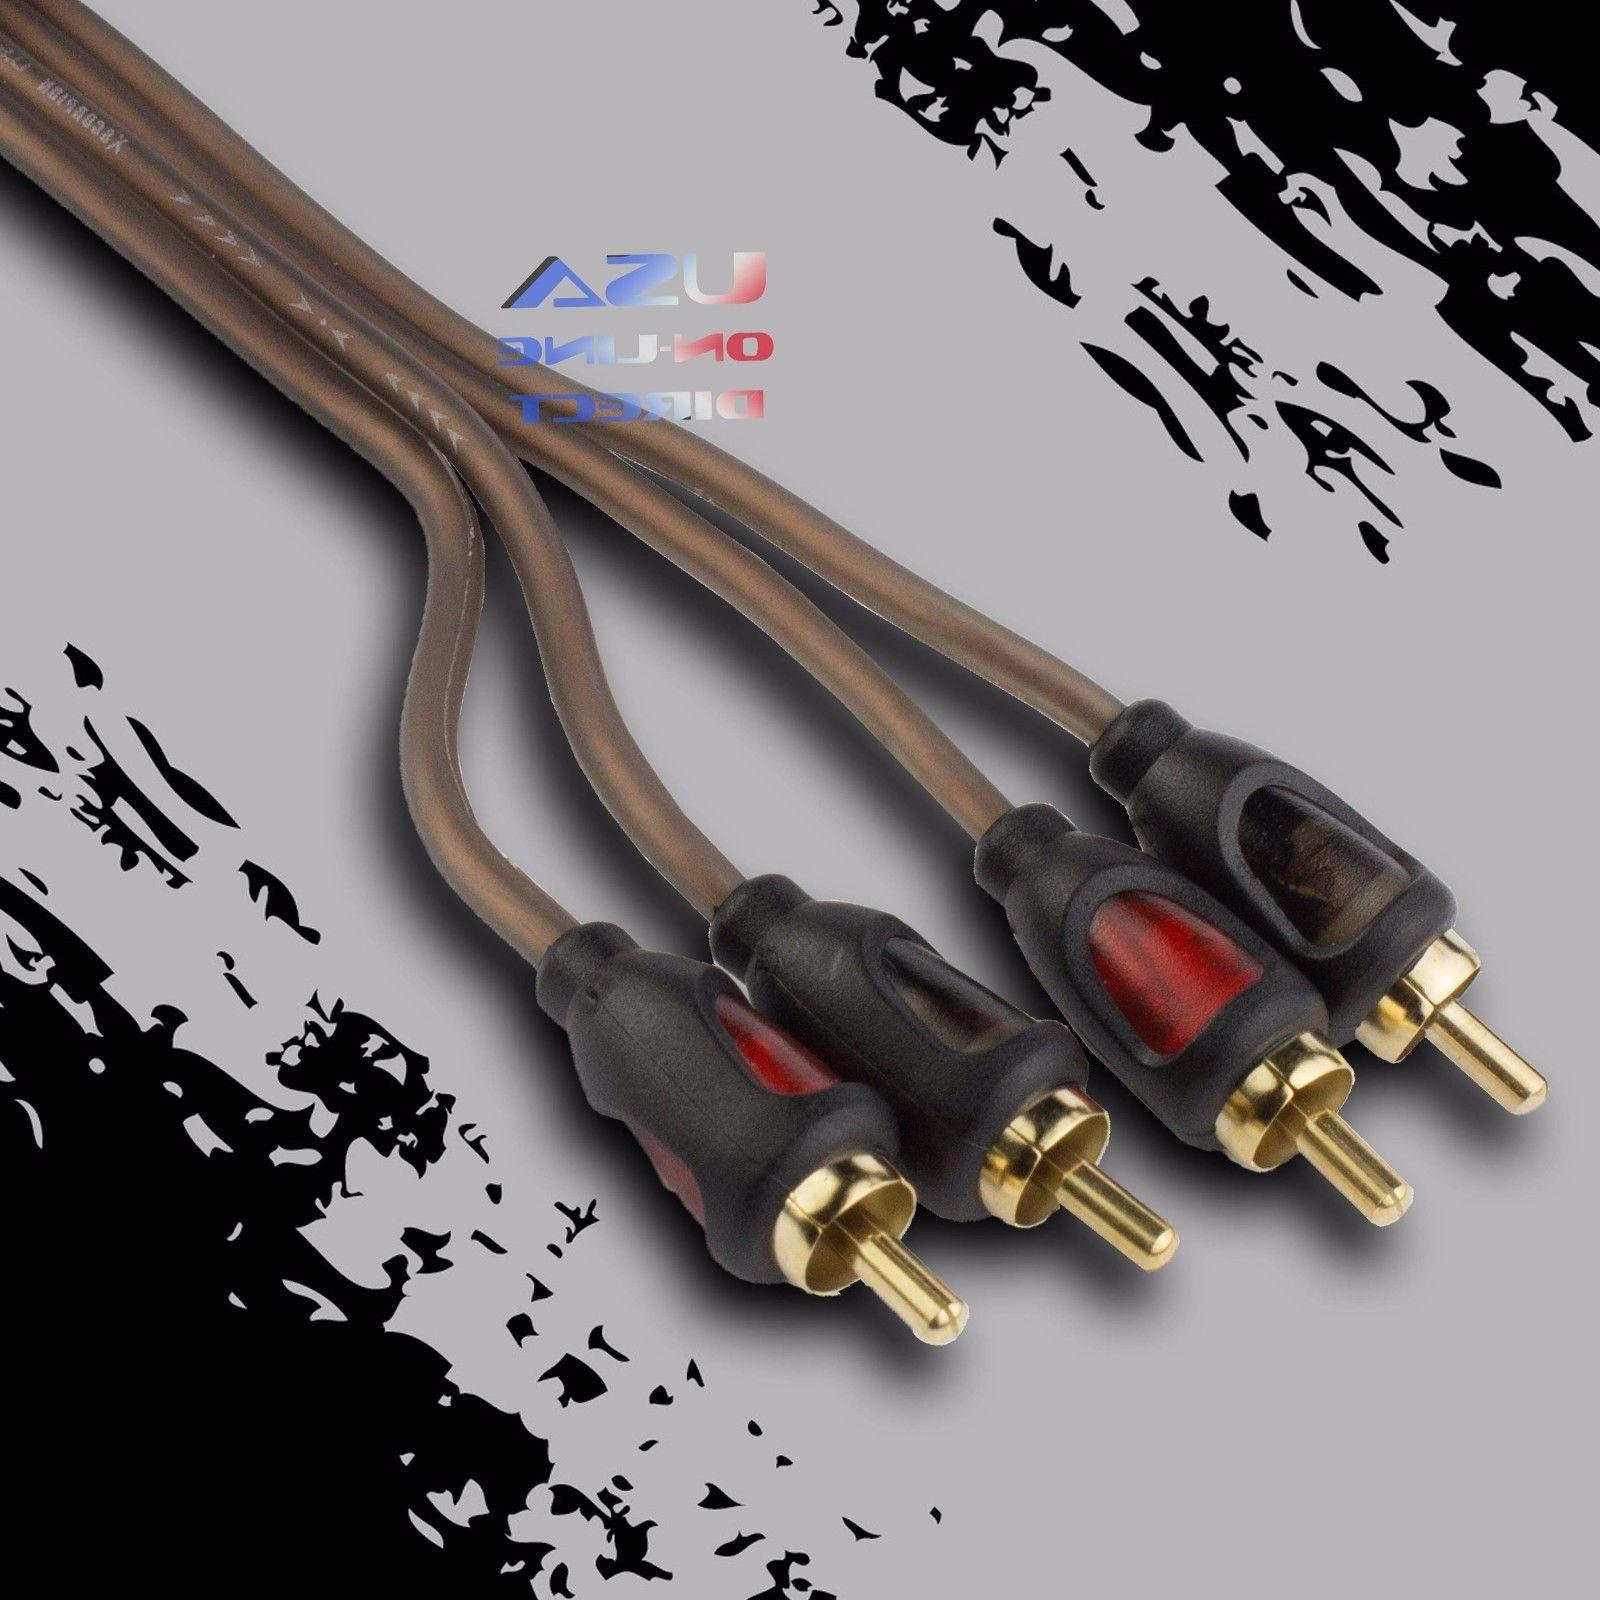 15FT CAR STEREO AUDIO RCA INTERCONNECT COPPER ULTRA FLEXIBLE